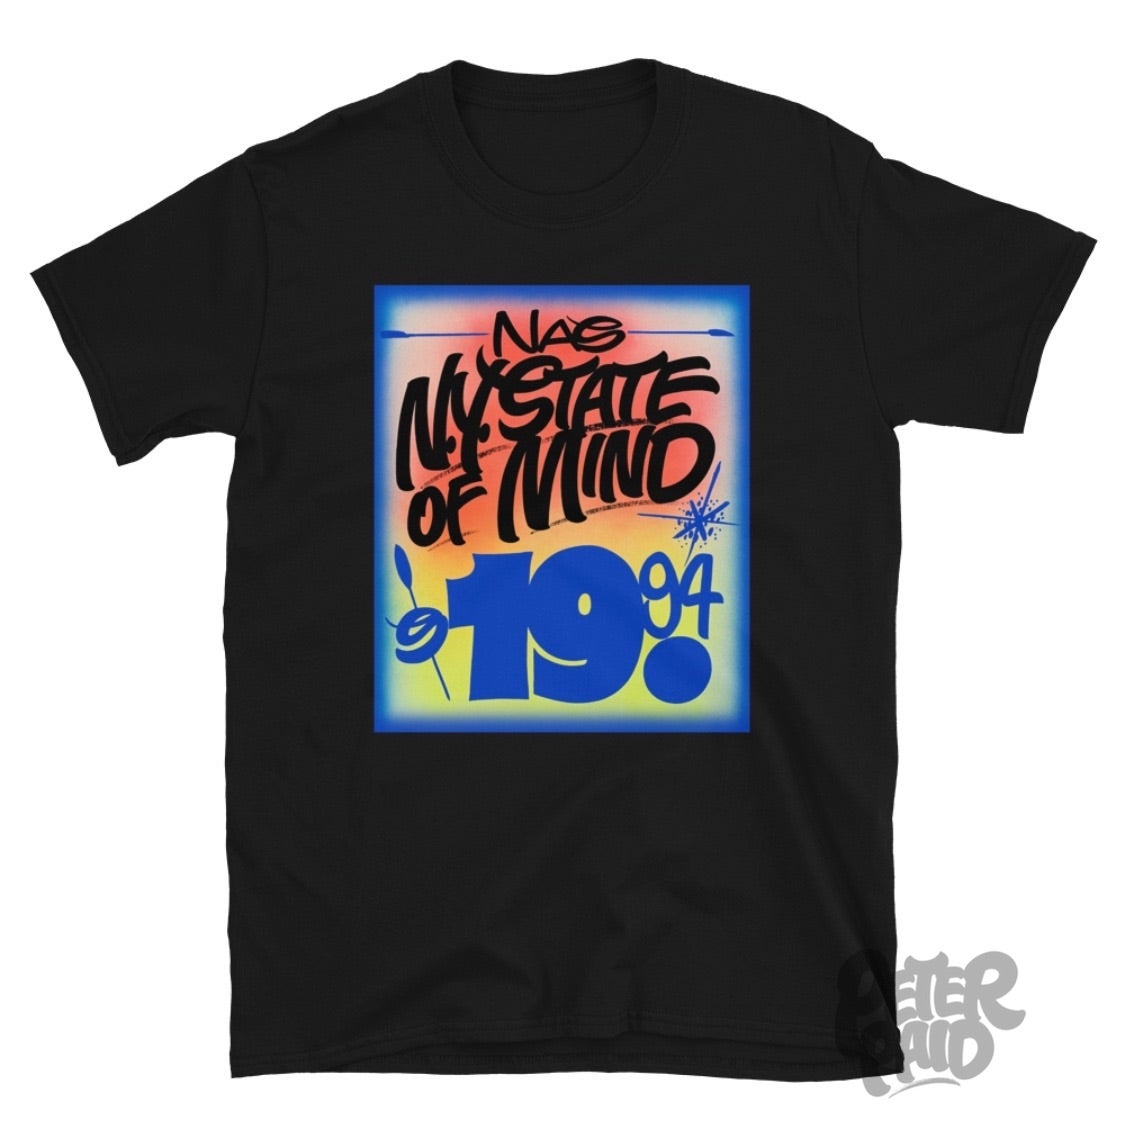 Image of NY State of Mind T-Shirt